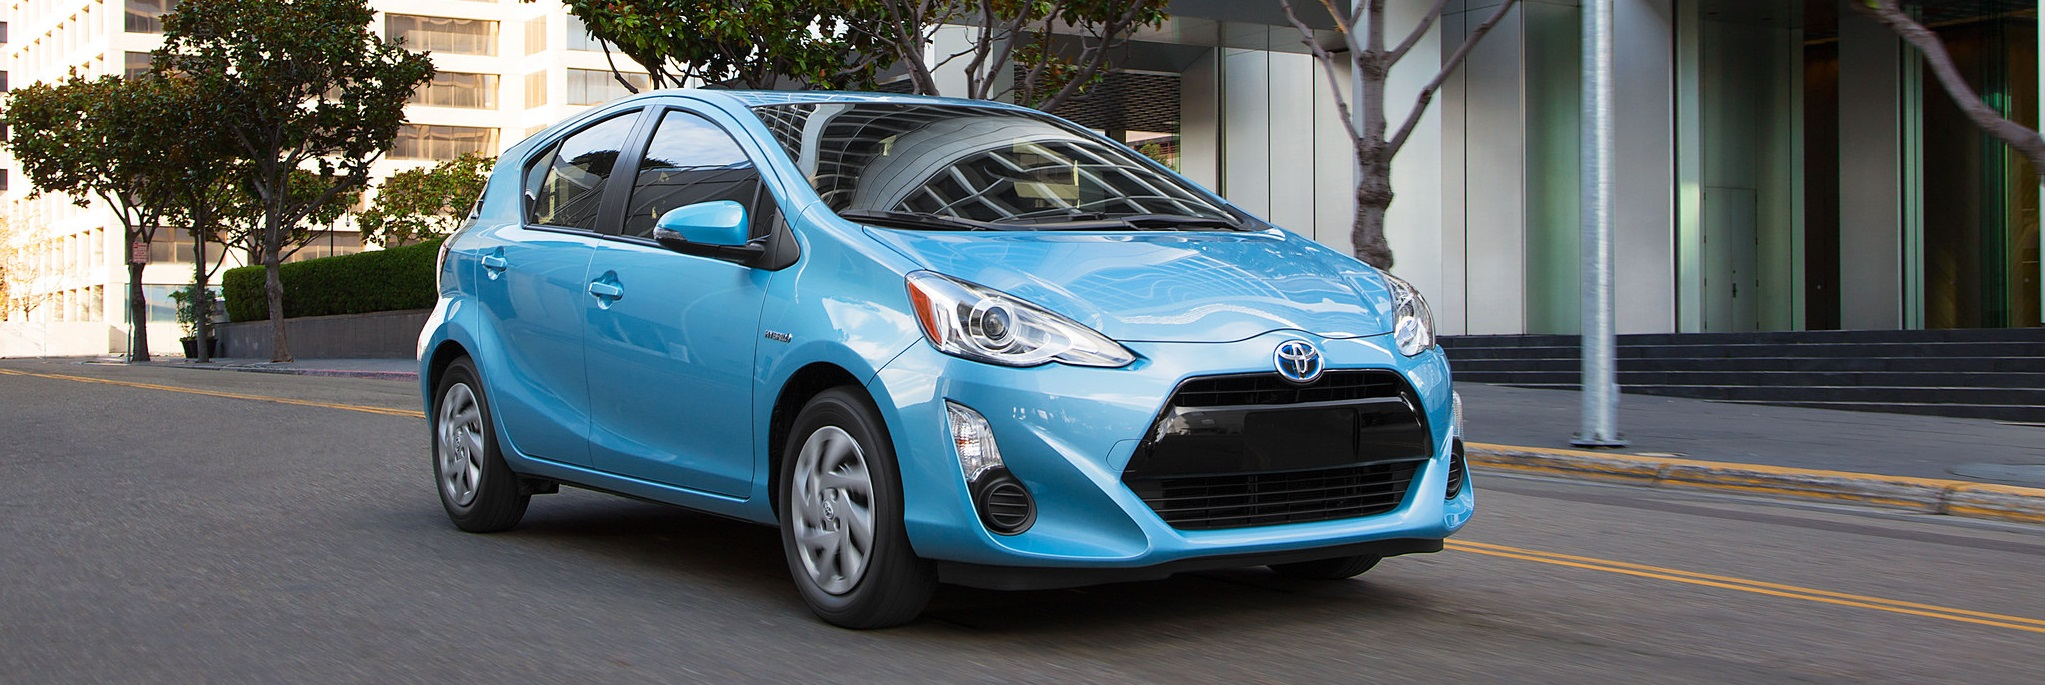 2016 Toyota Prius c at Toyota of Gastonia near Charlotte NC